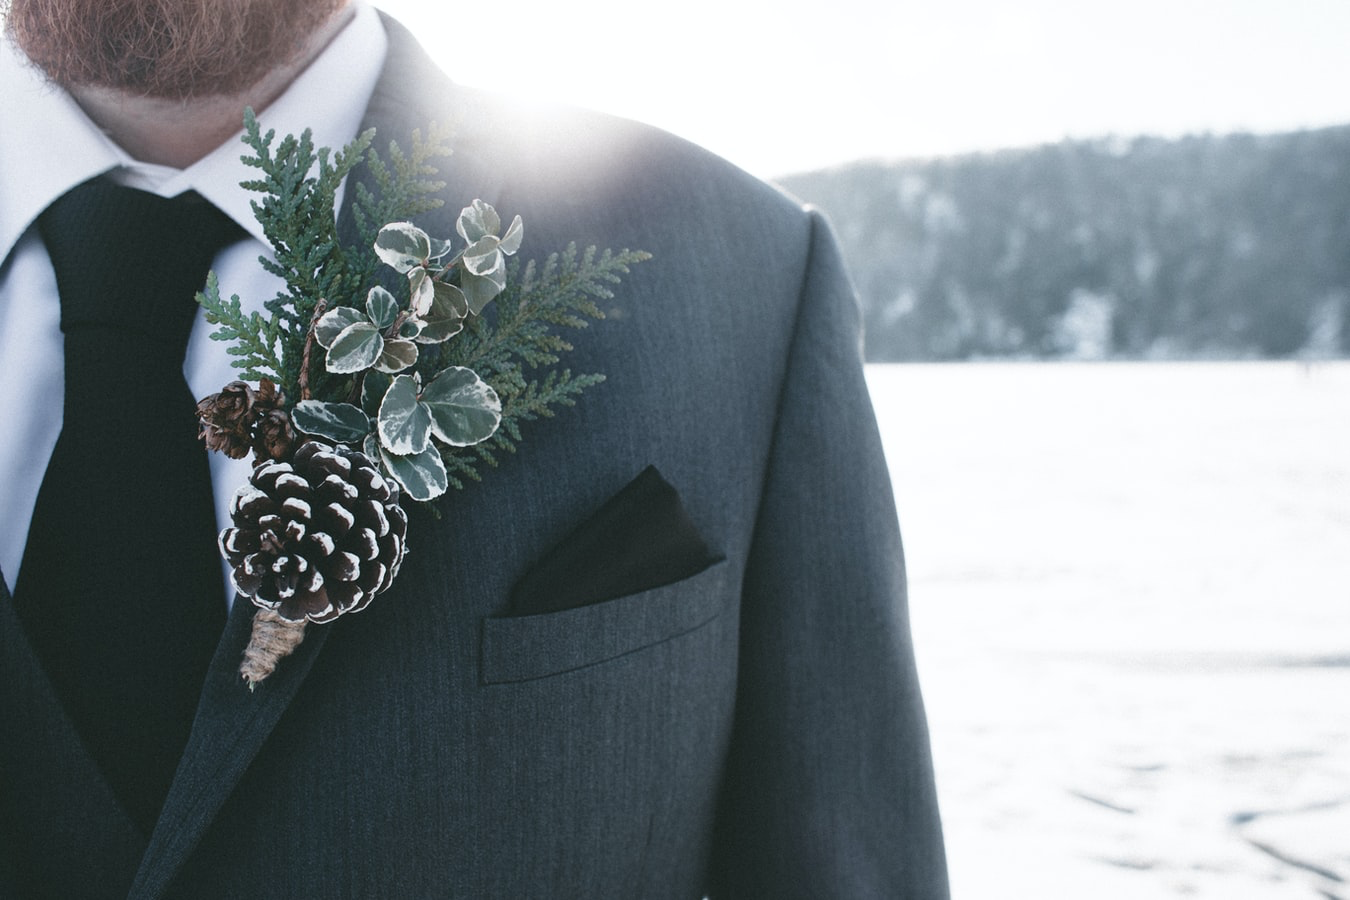 Winter photo of a Groom